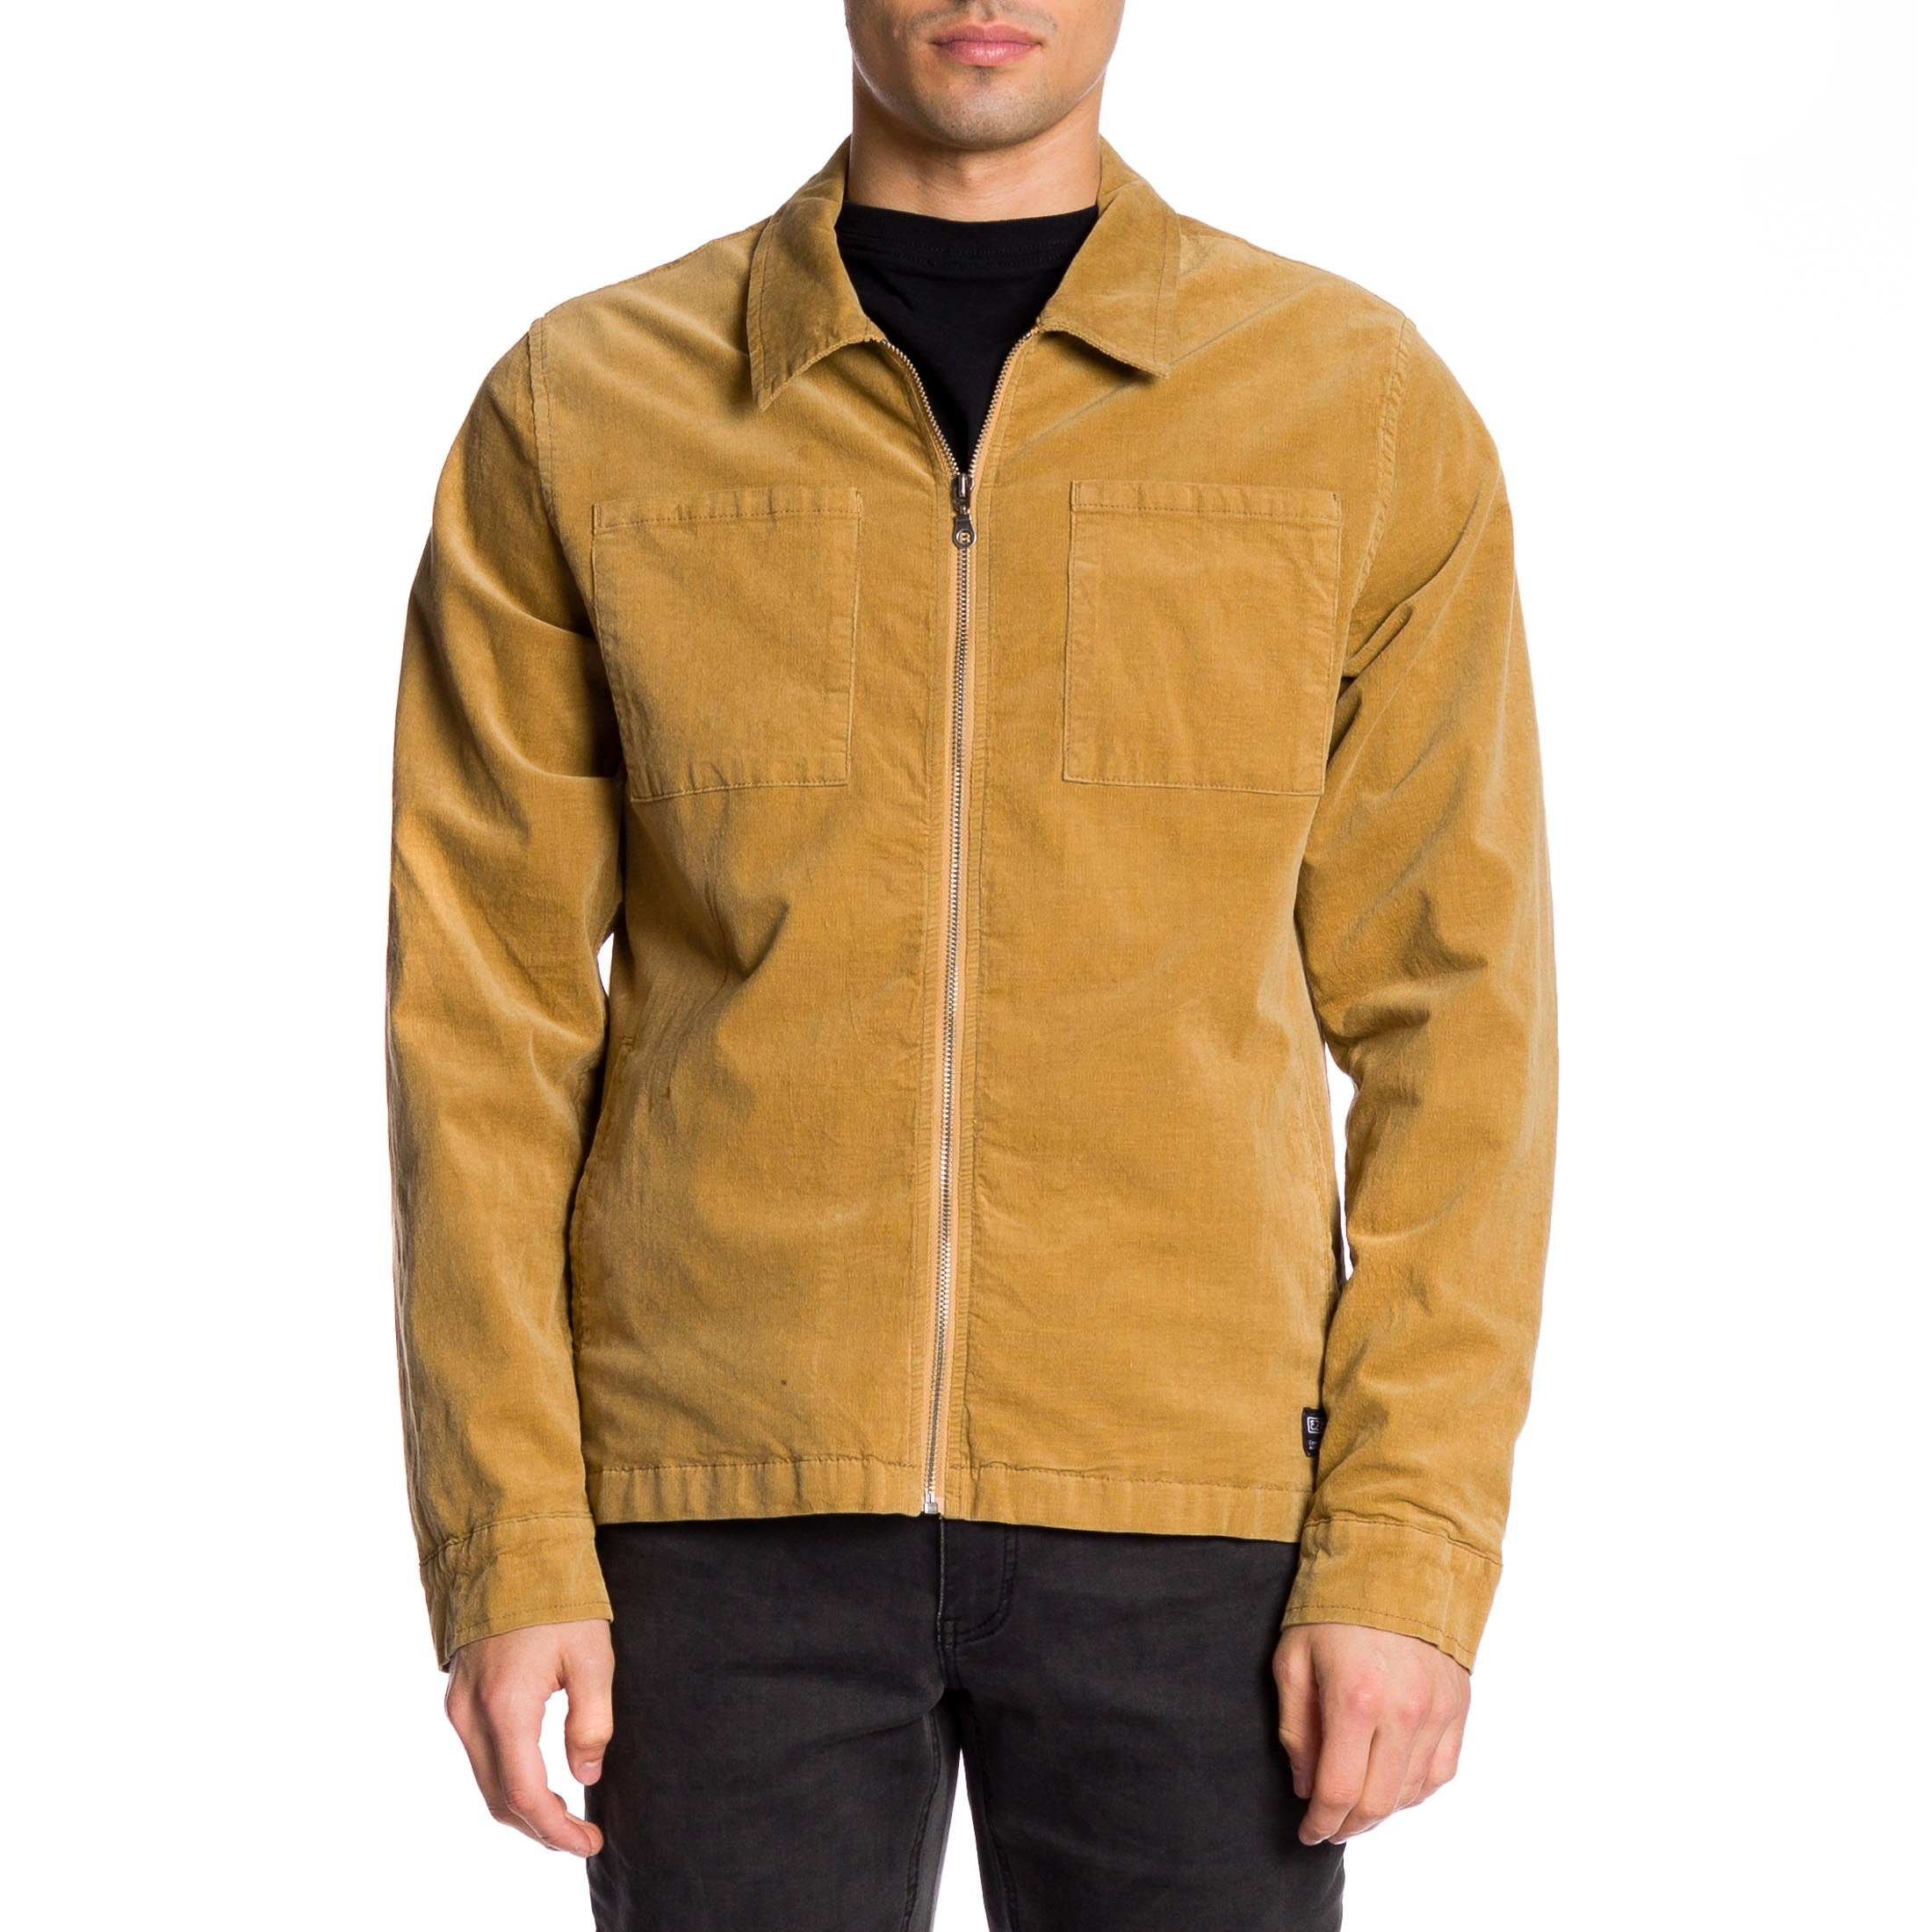 Morrison Jacket - Tobacco - Ezekiel Clothing